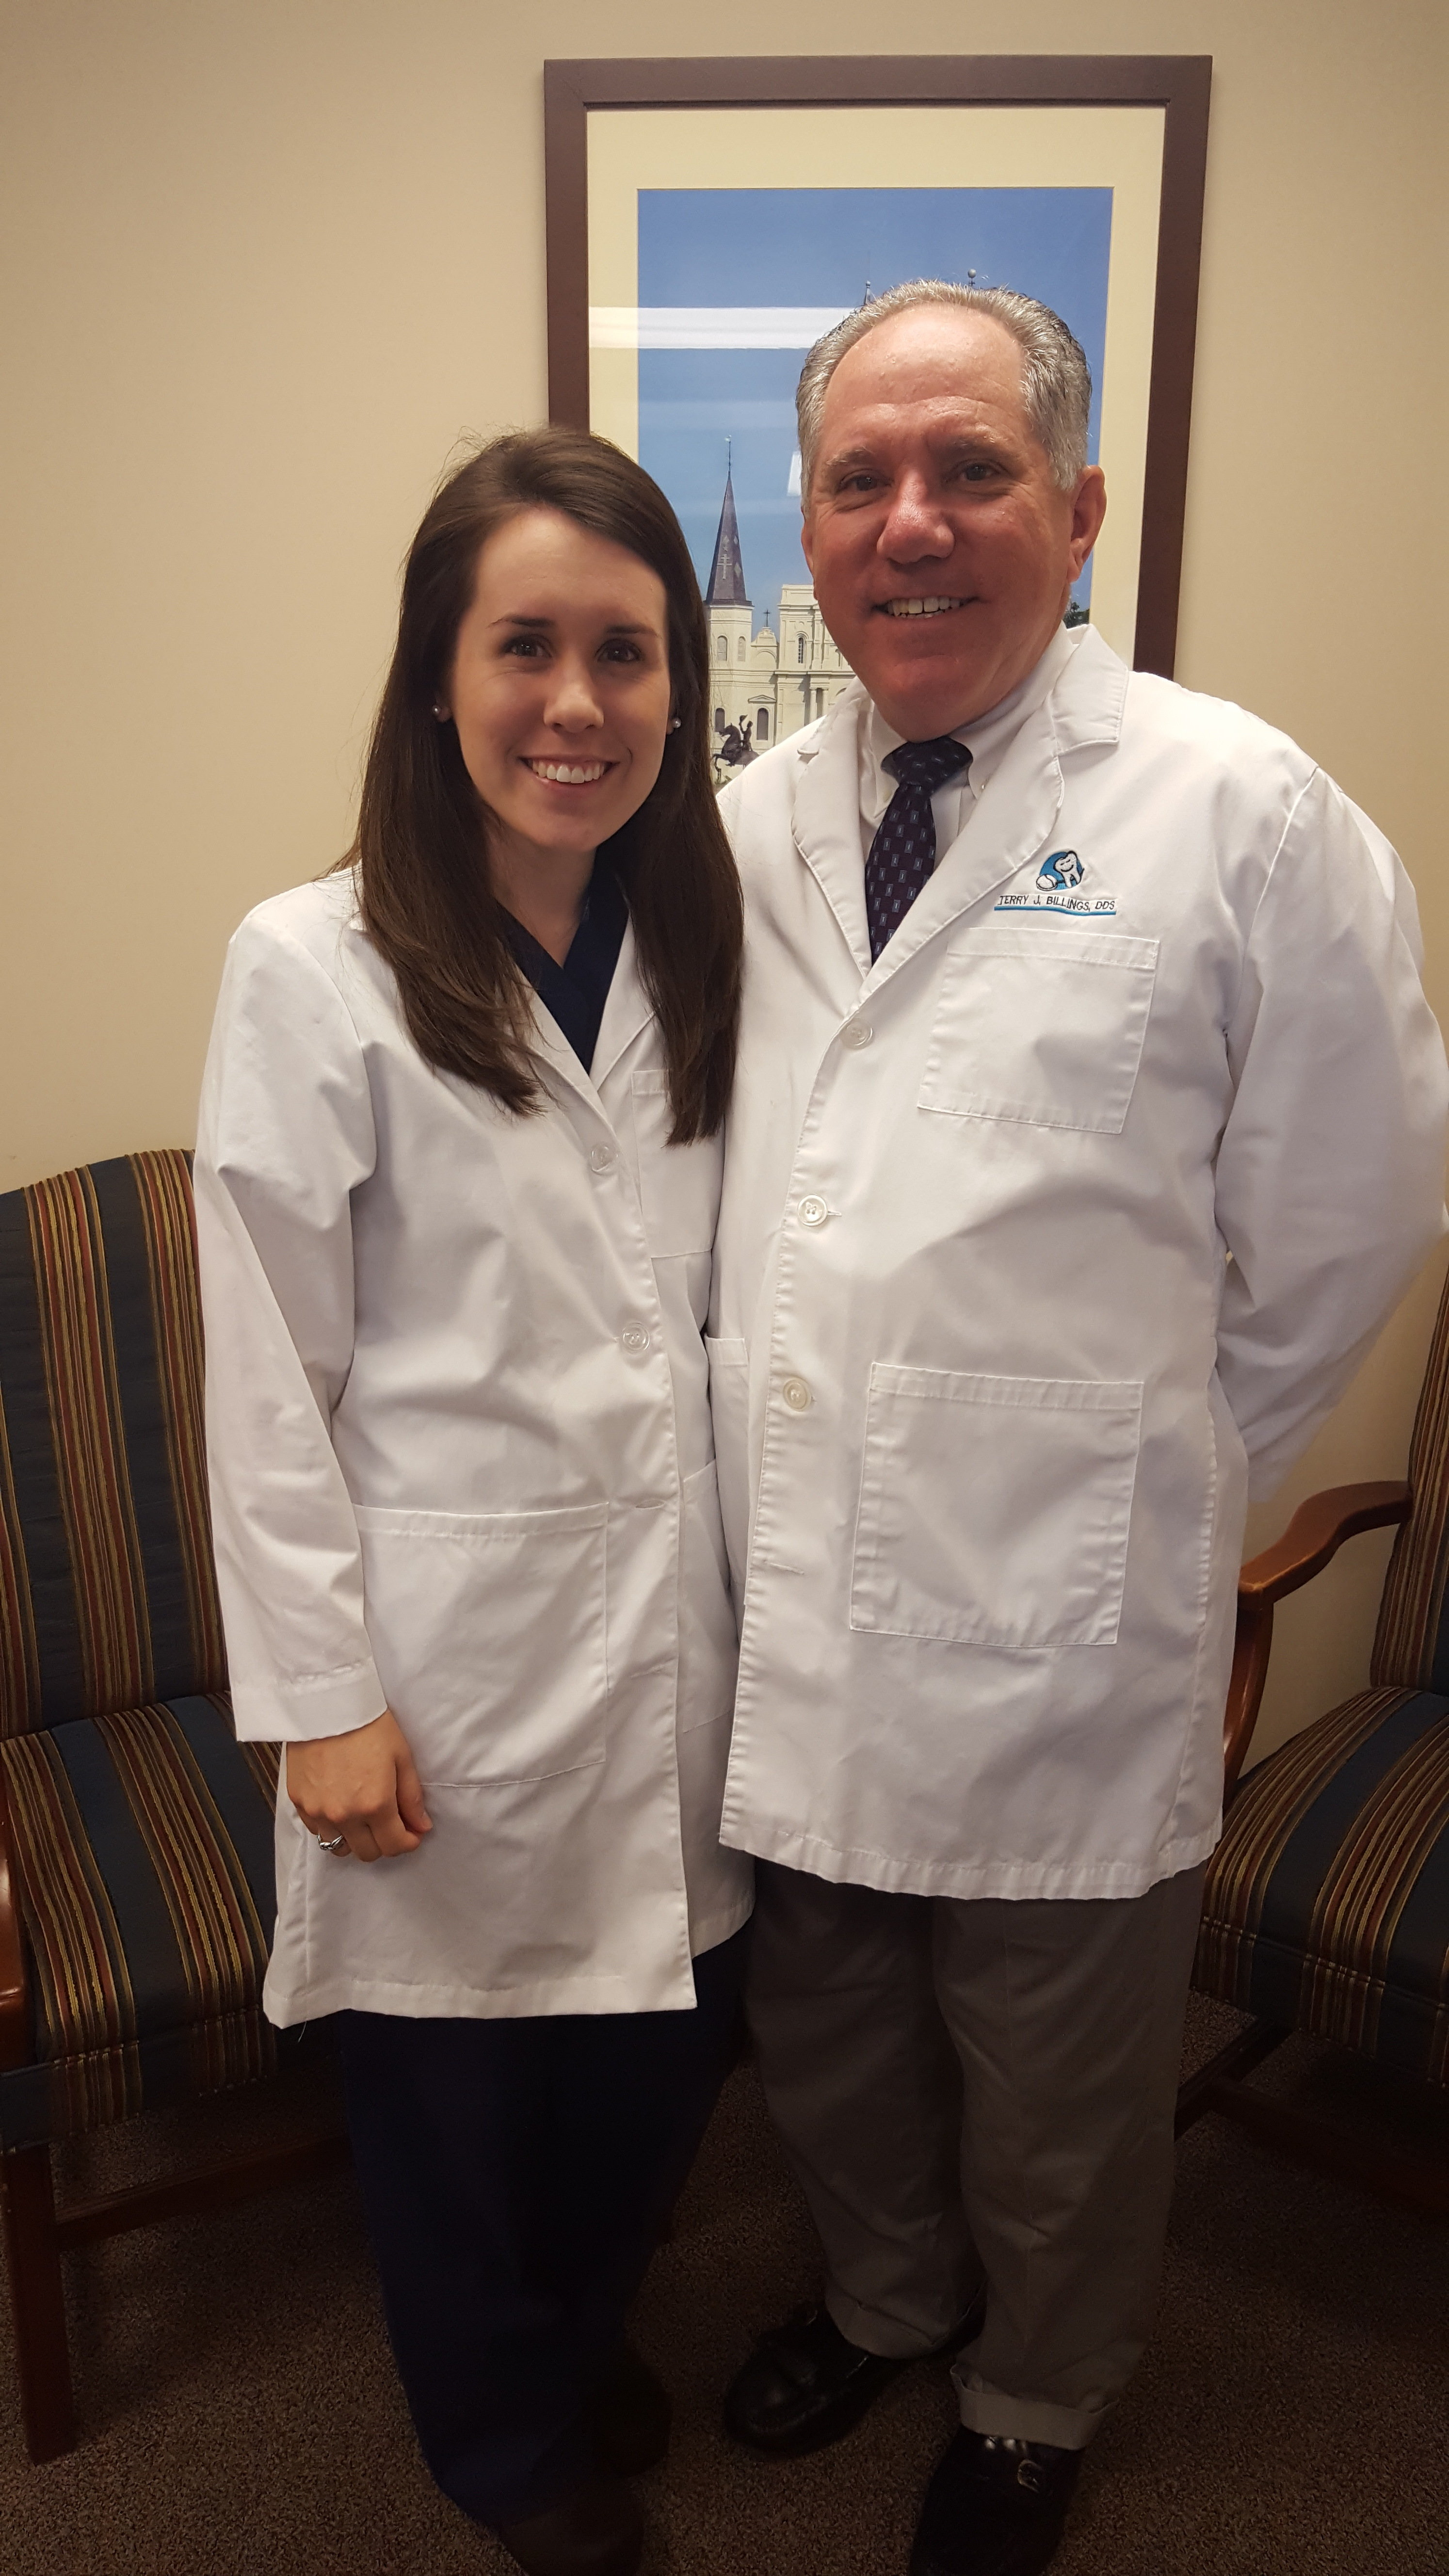 Dr. Emily Billings & Dr. Terry Billings